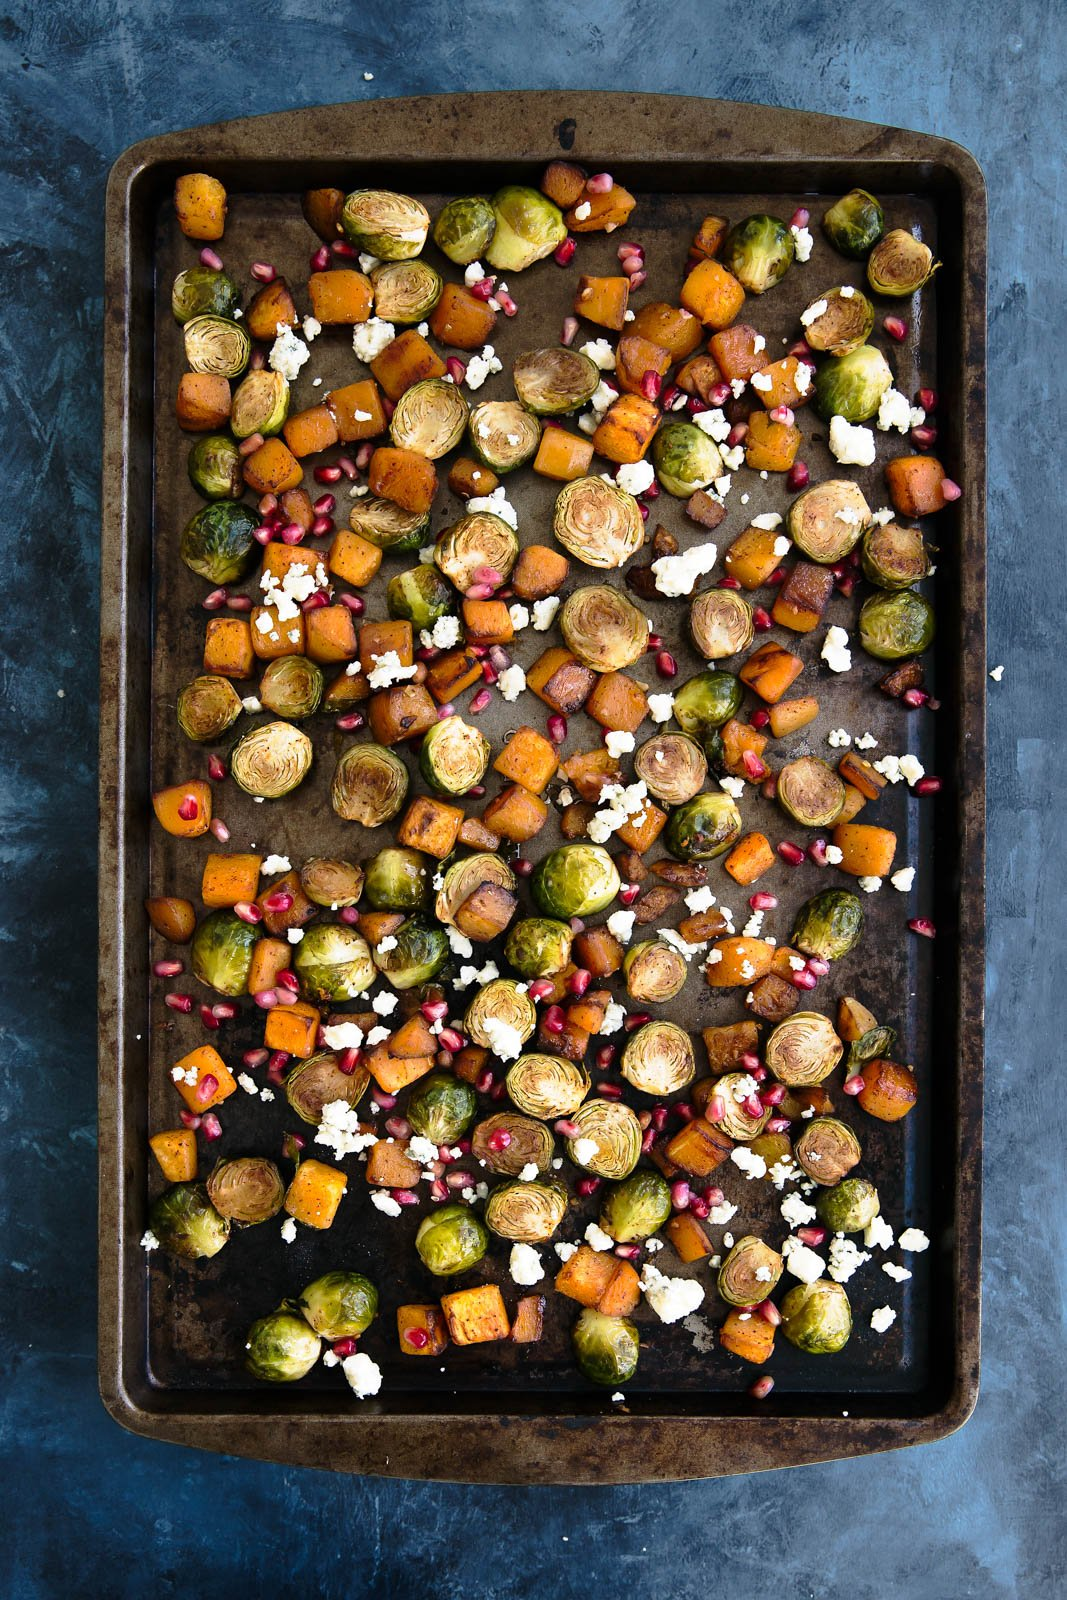 Roasted butternut squash and brussels sprouts with pomegranate and gorgonzola on a baking tray